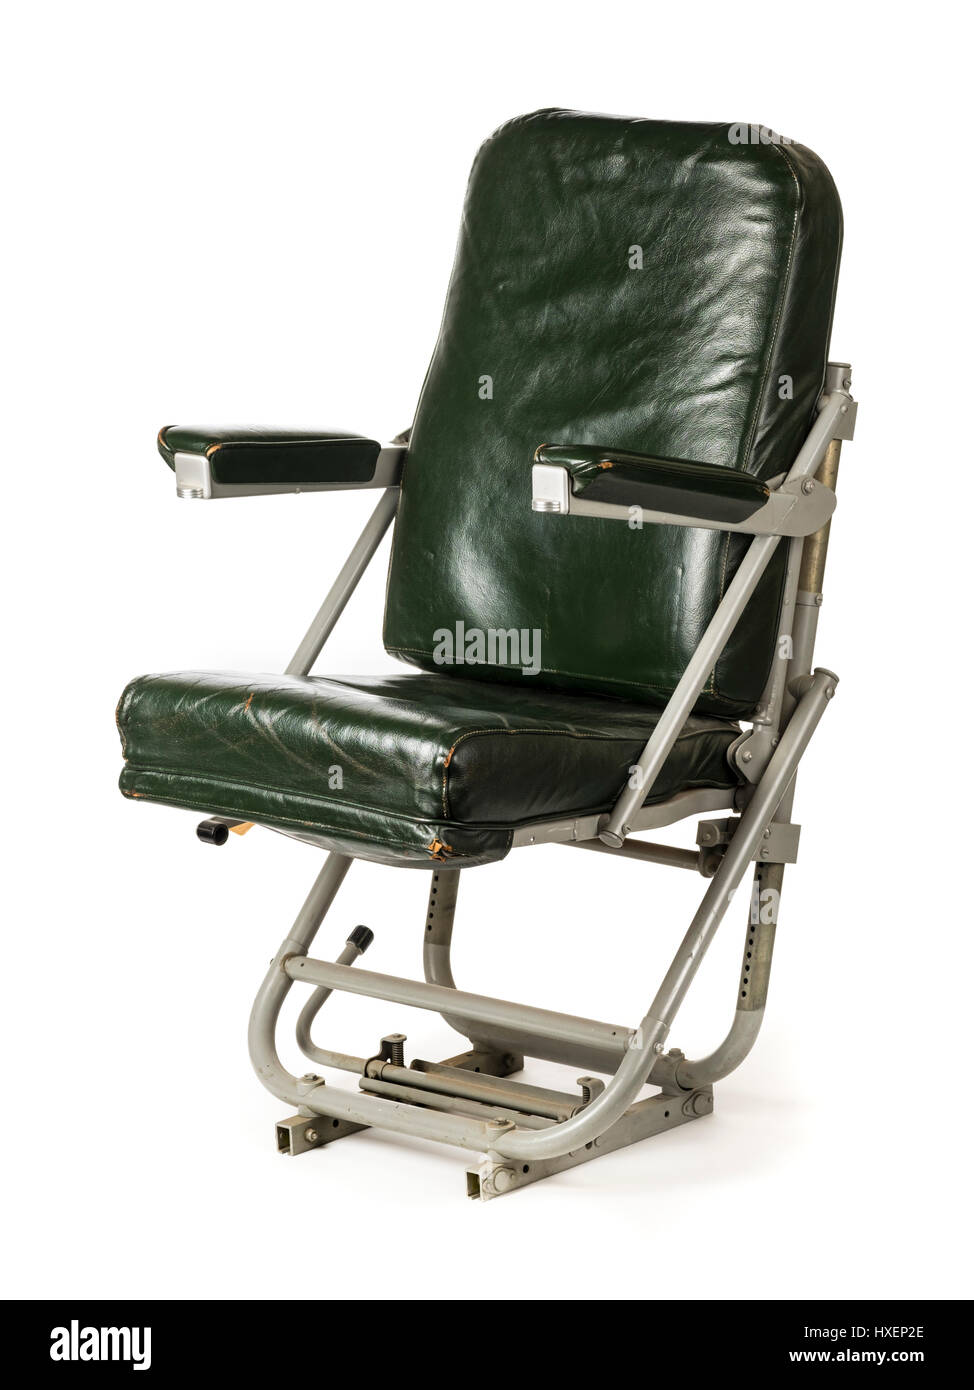 WW2 Royal Air Force DC-3 Dakota aircraft spring-loaded co-pilot seat with green leather upholstery. Manufactured - Stock Image